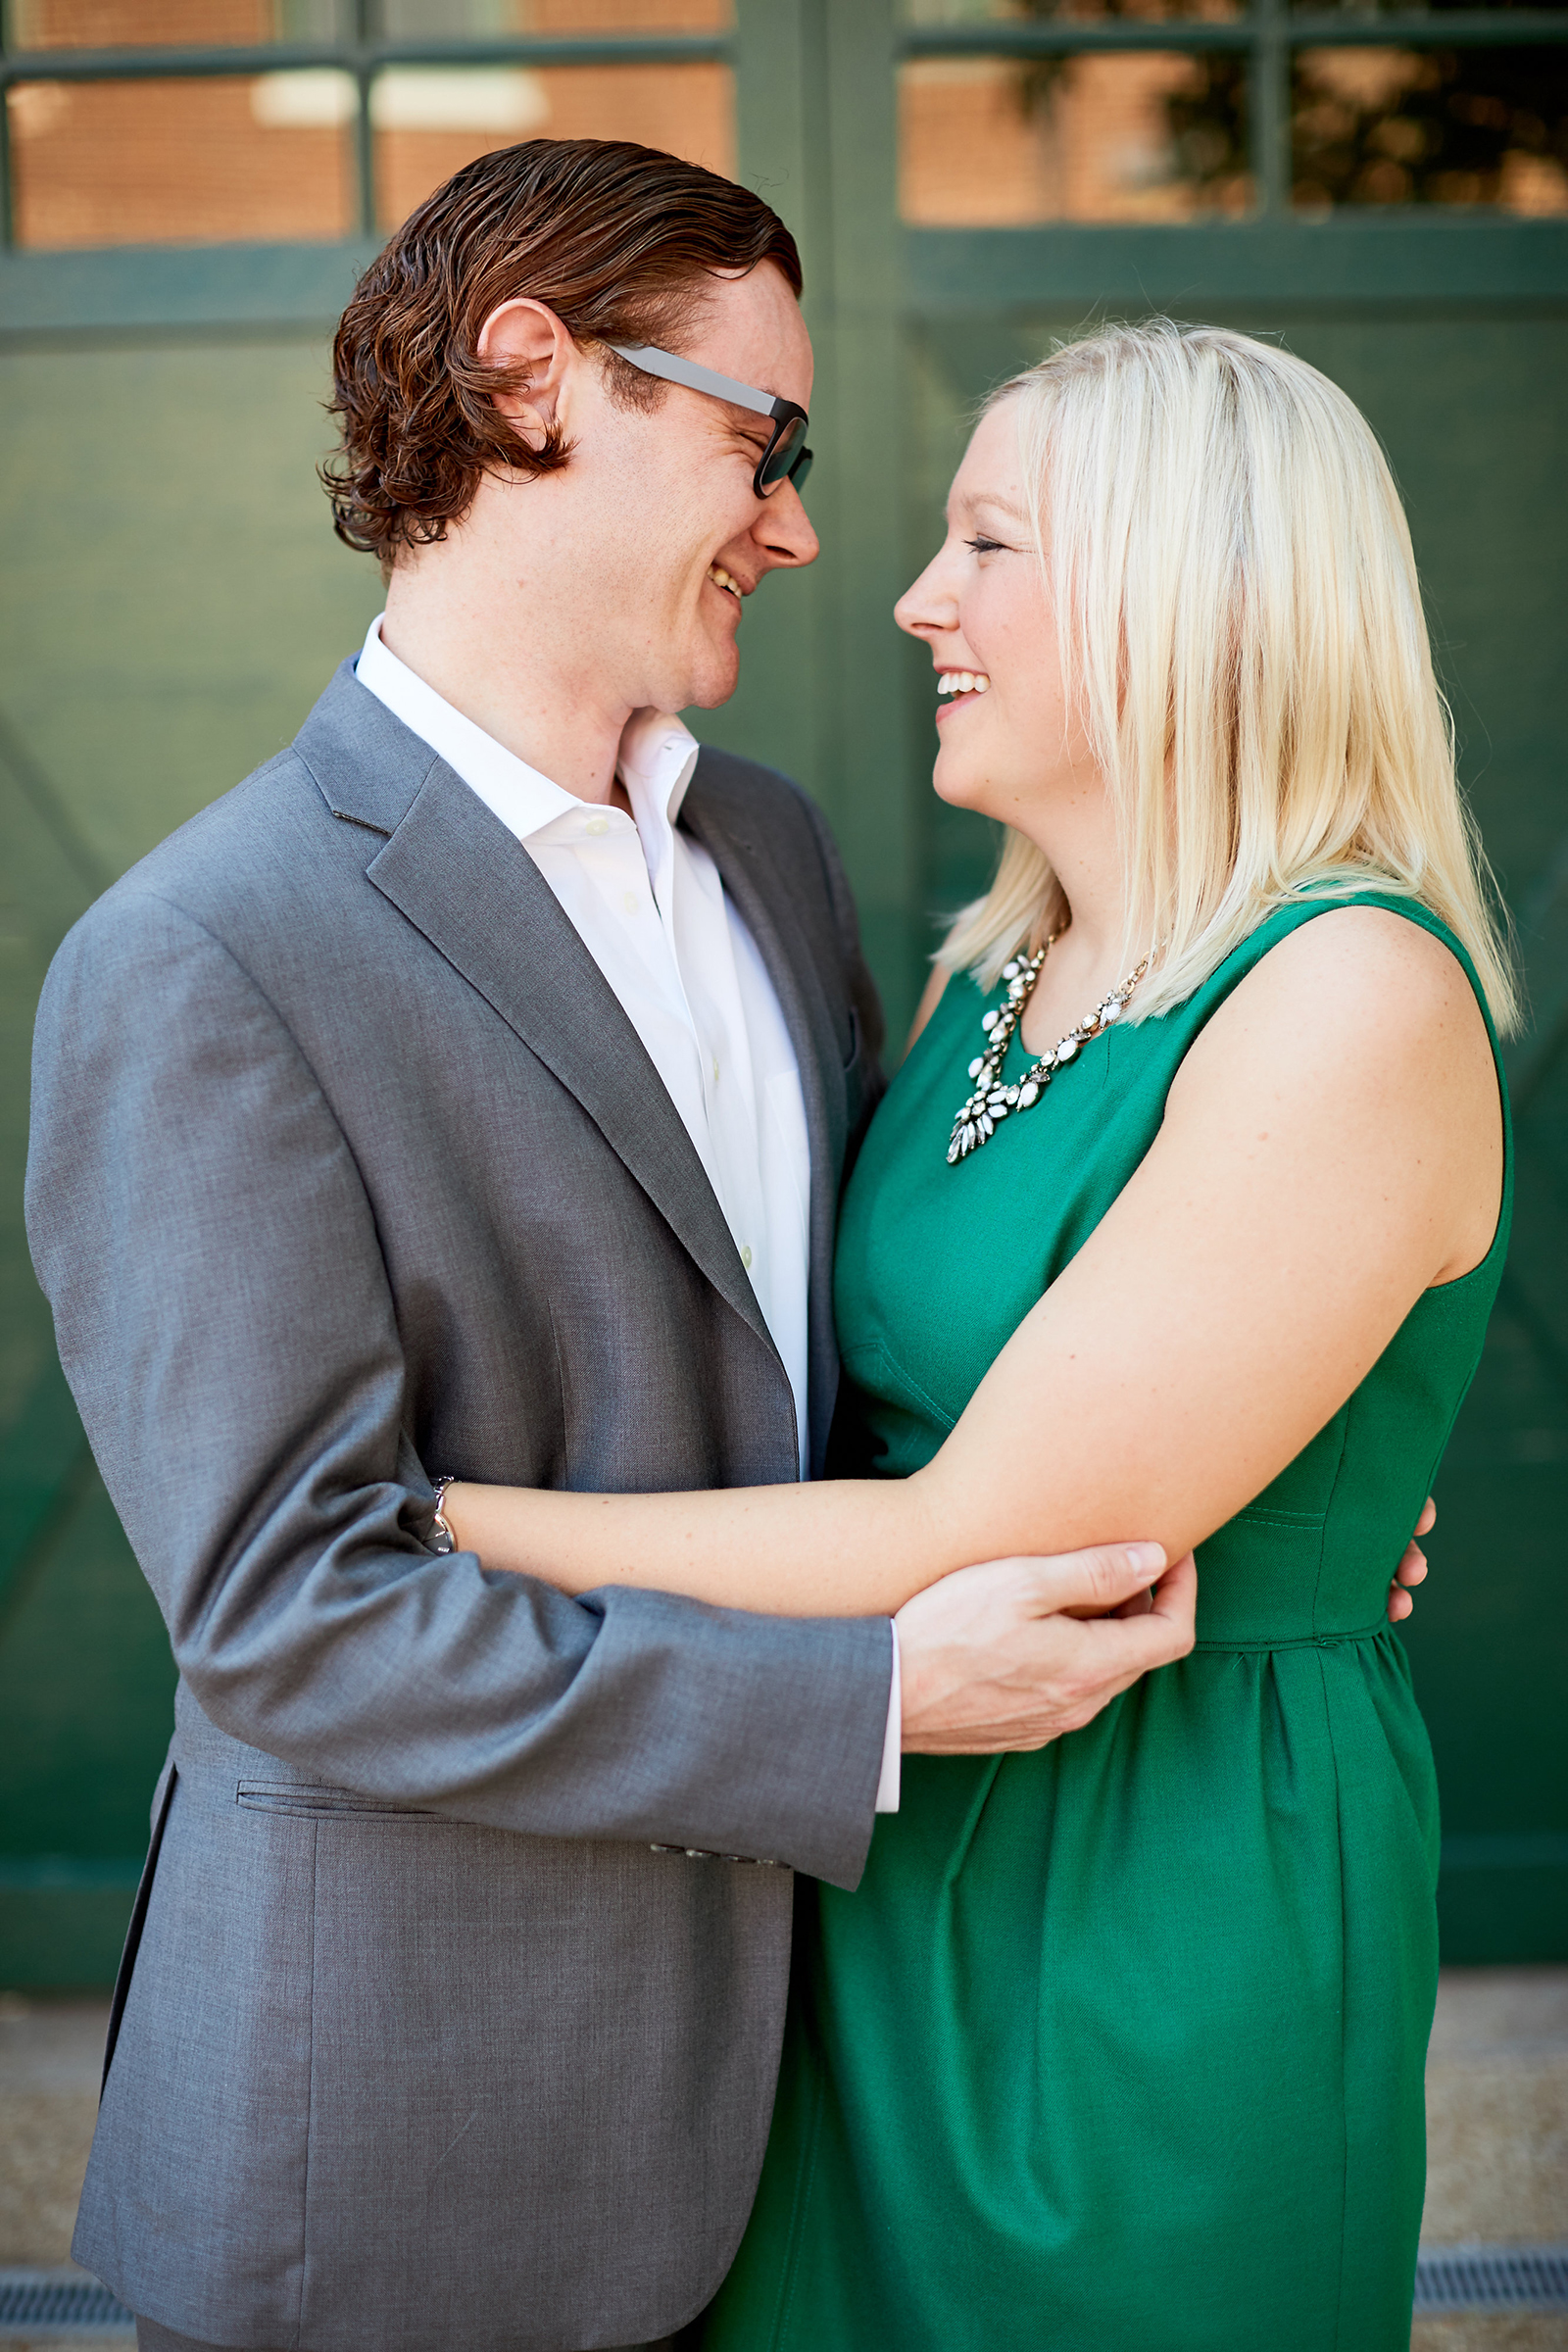 Lafayette Park Engagement Session by Oldani Photography St. Louis Wedding Photographers 56.jpg